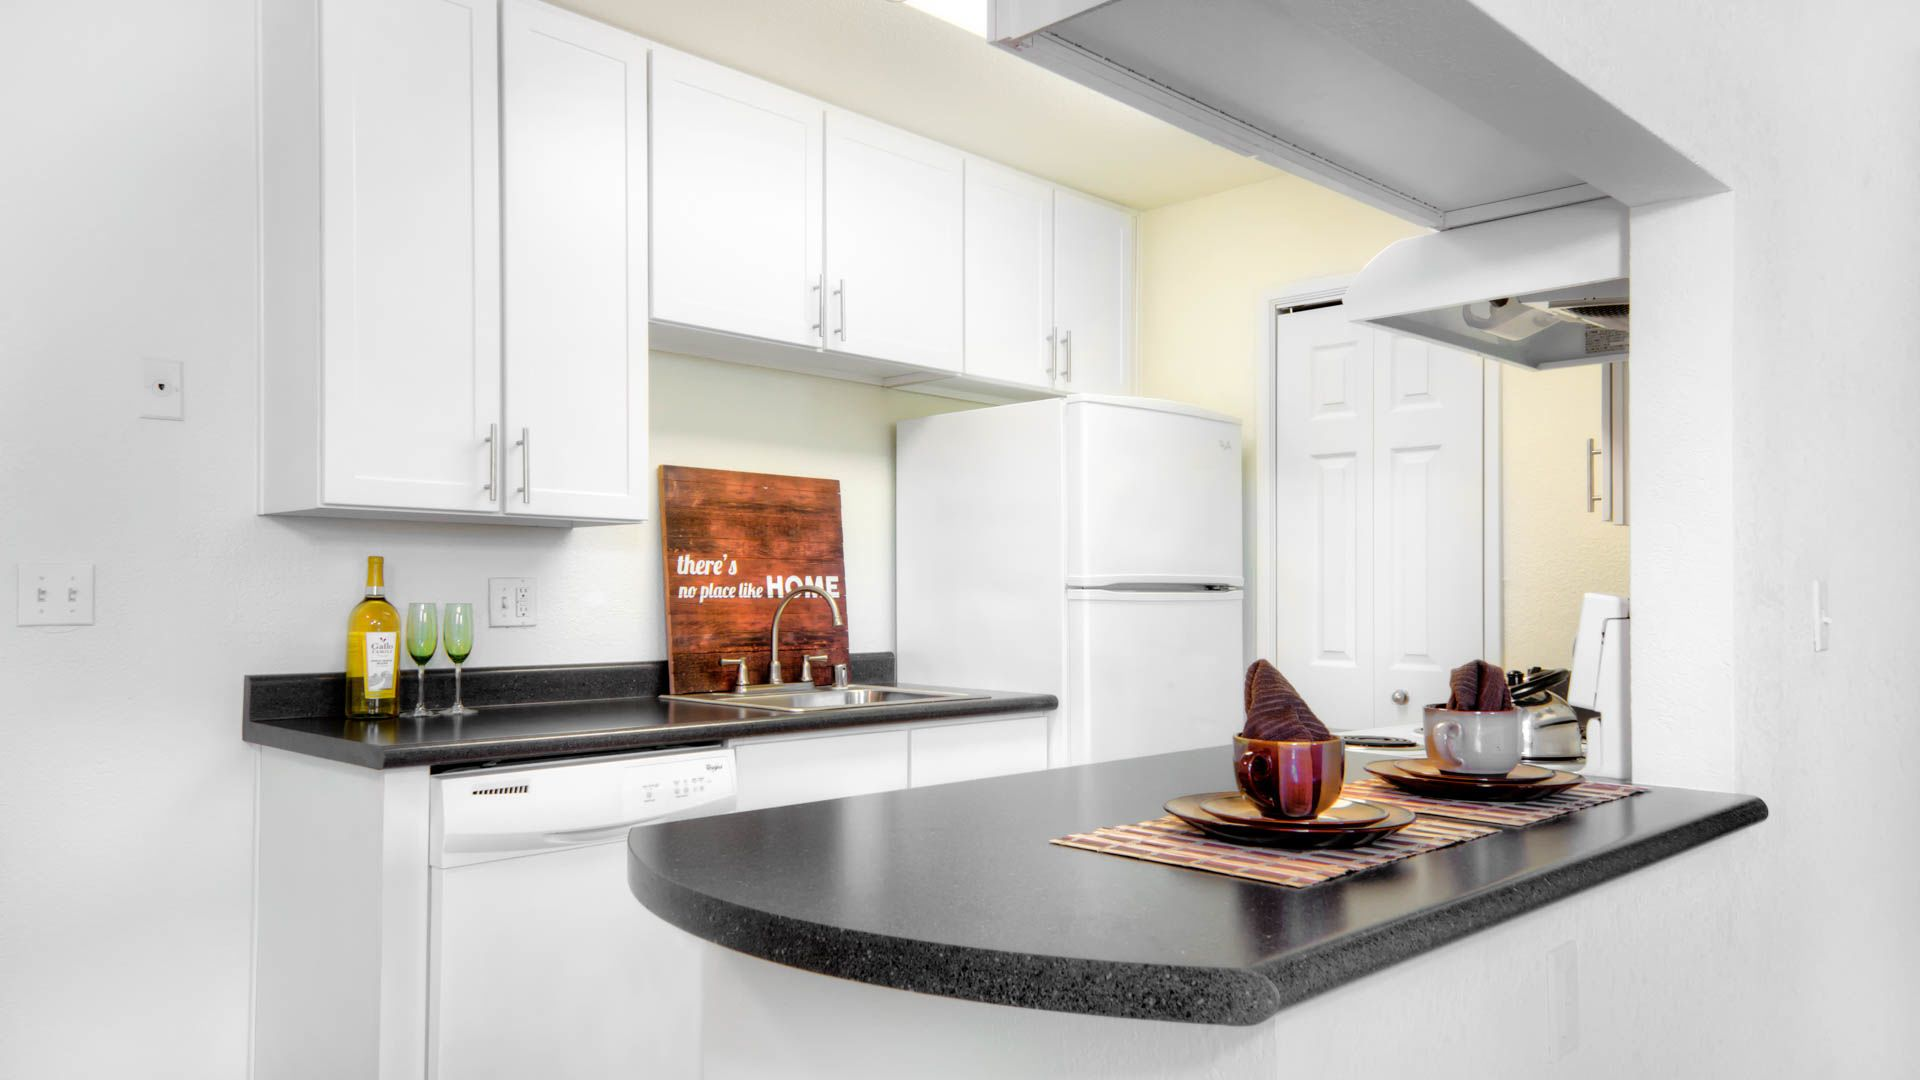 Woodleaf Apartments - Kitchen